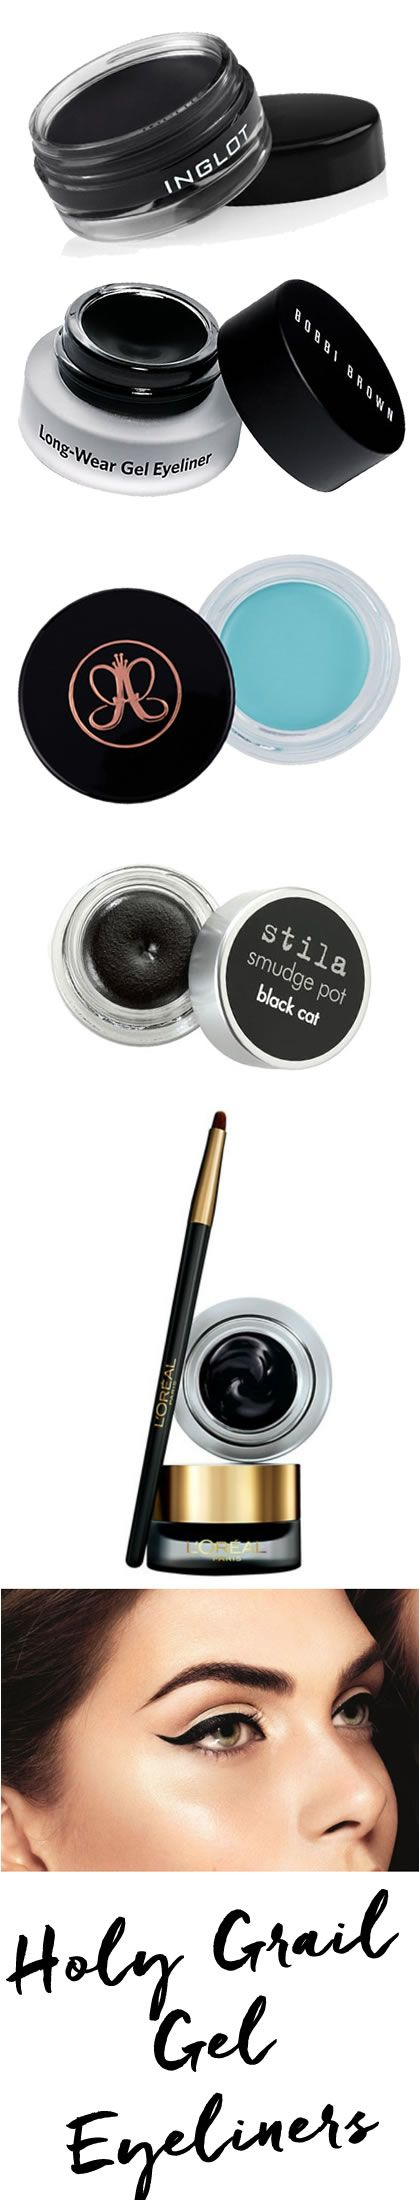 Our picks for the best Gel Liners out there!!  http://blog.pampadour.com/monday-must-haves-best-gel-eyeliners/ #makeup #eyes #liners